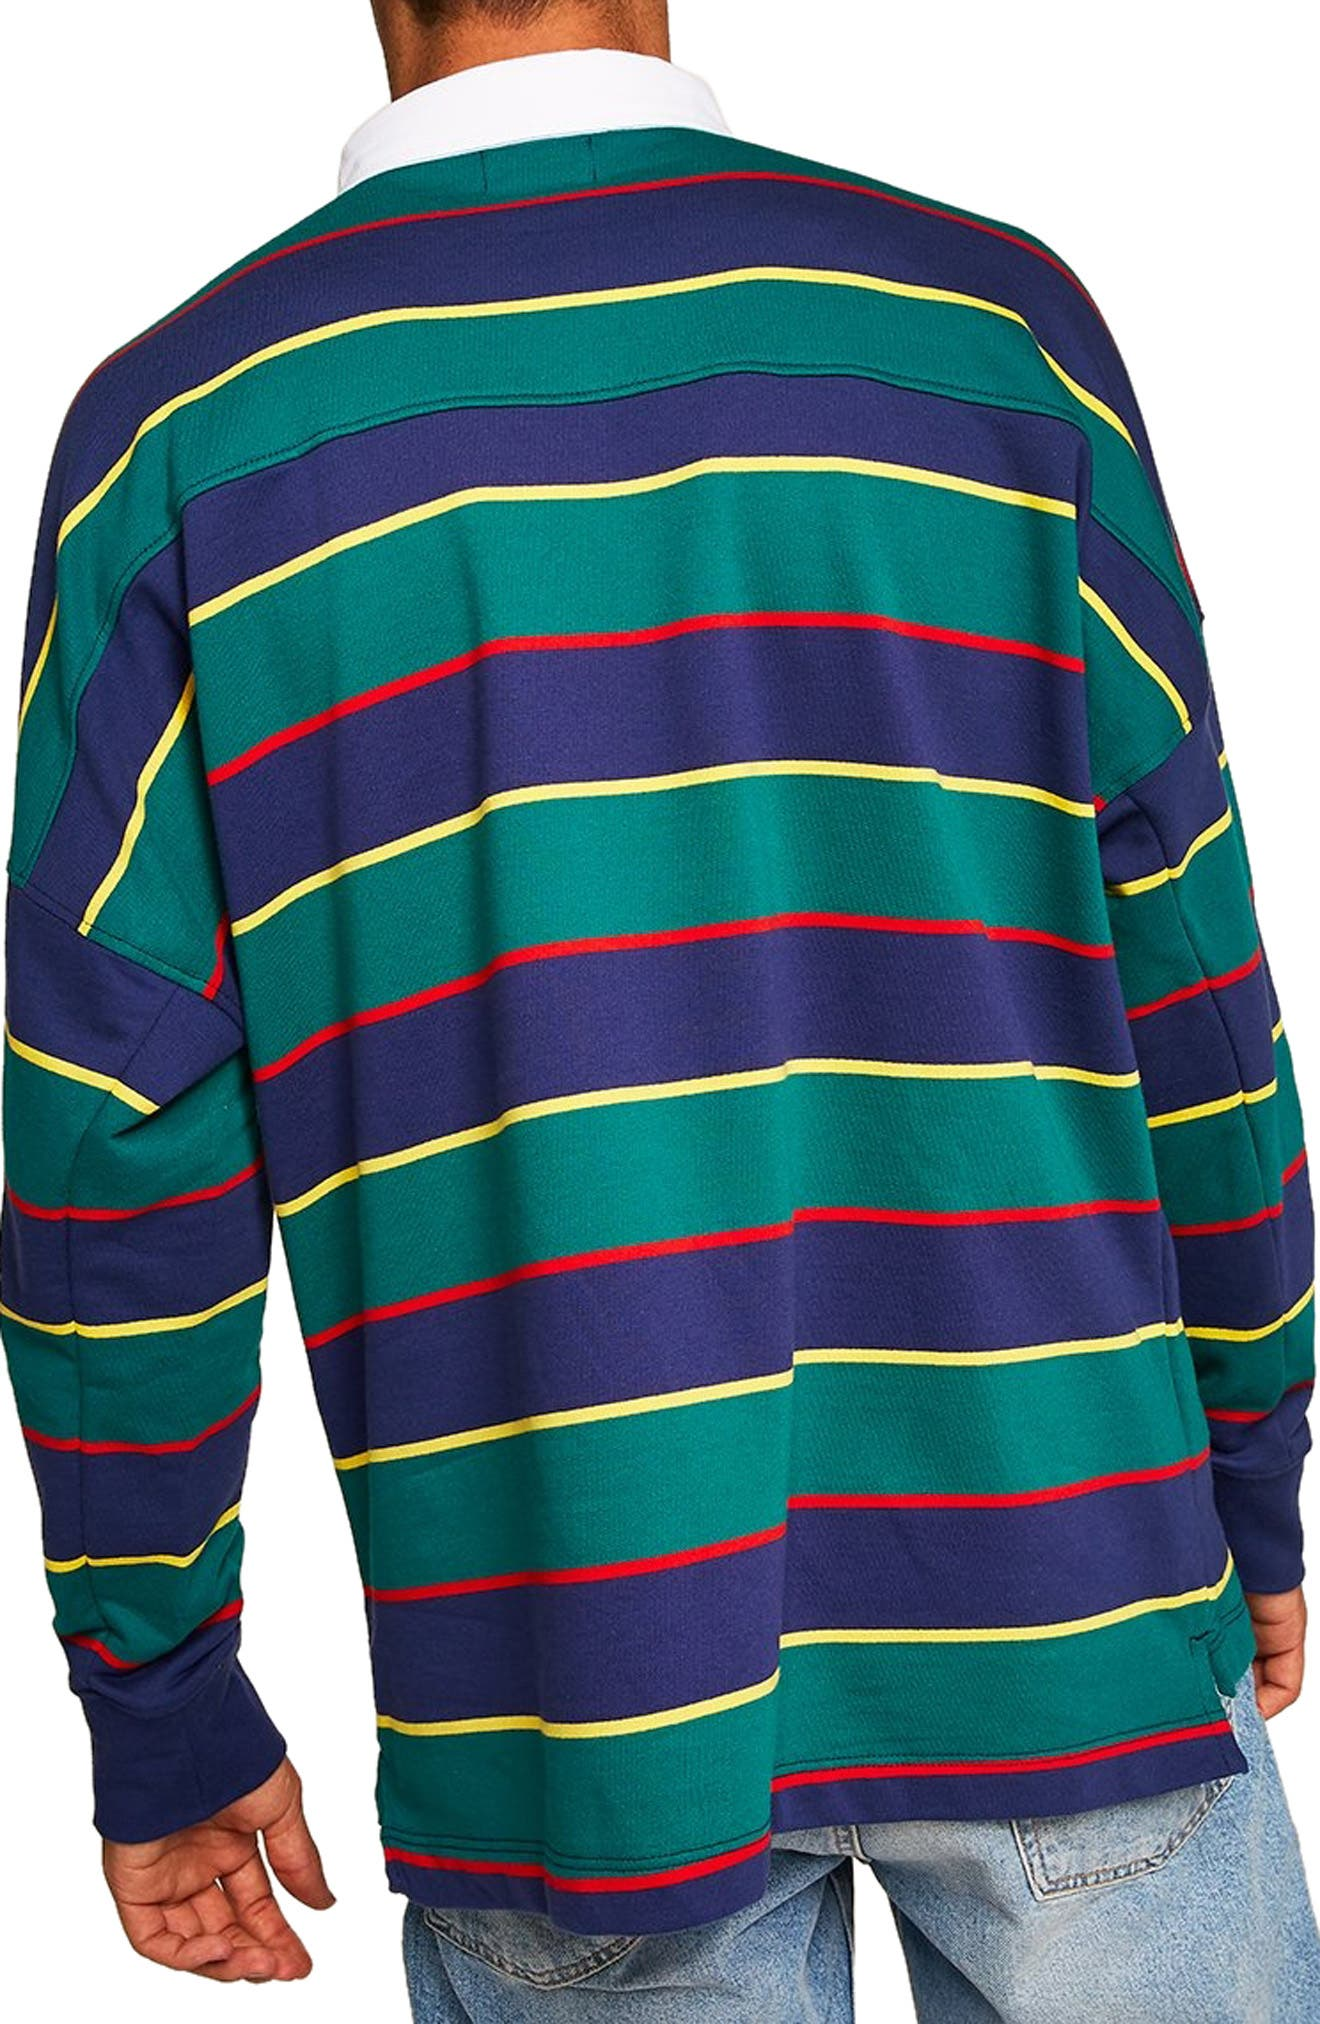 Rugby Stripe Shirt,                             Alternate thumbnail 3, color,                             GREEN MULTI